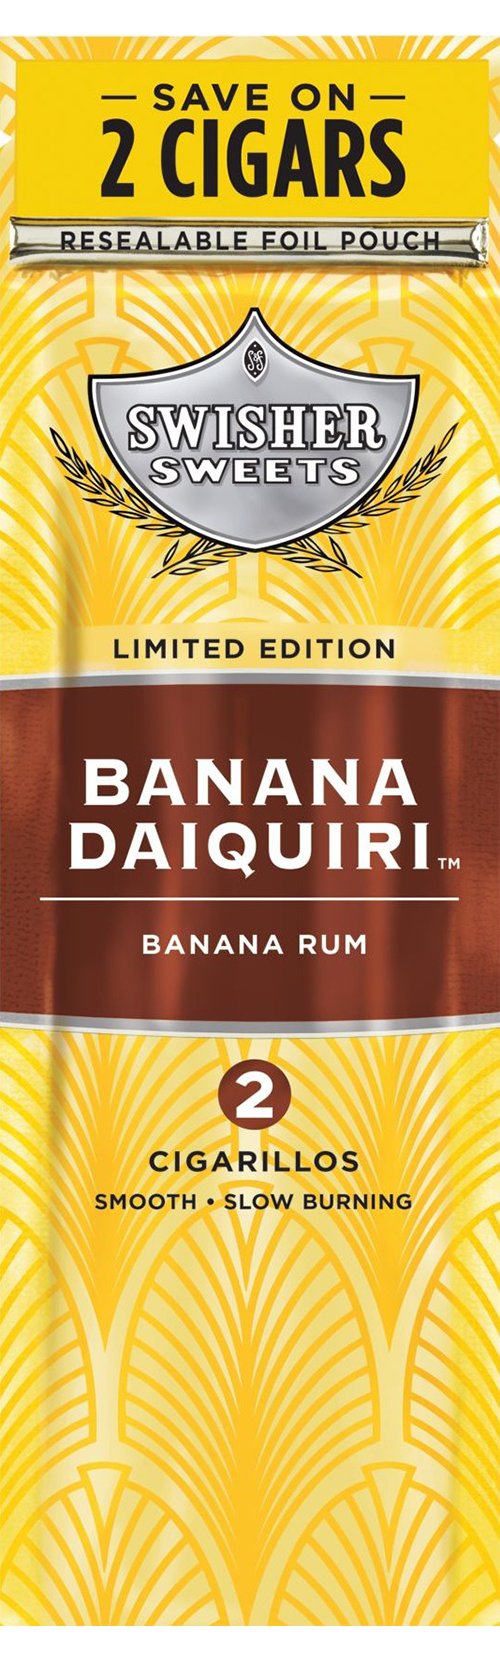 Limited Edition - Banana Daiquiri